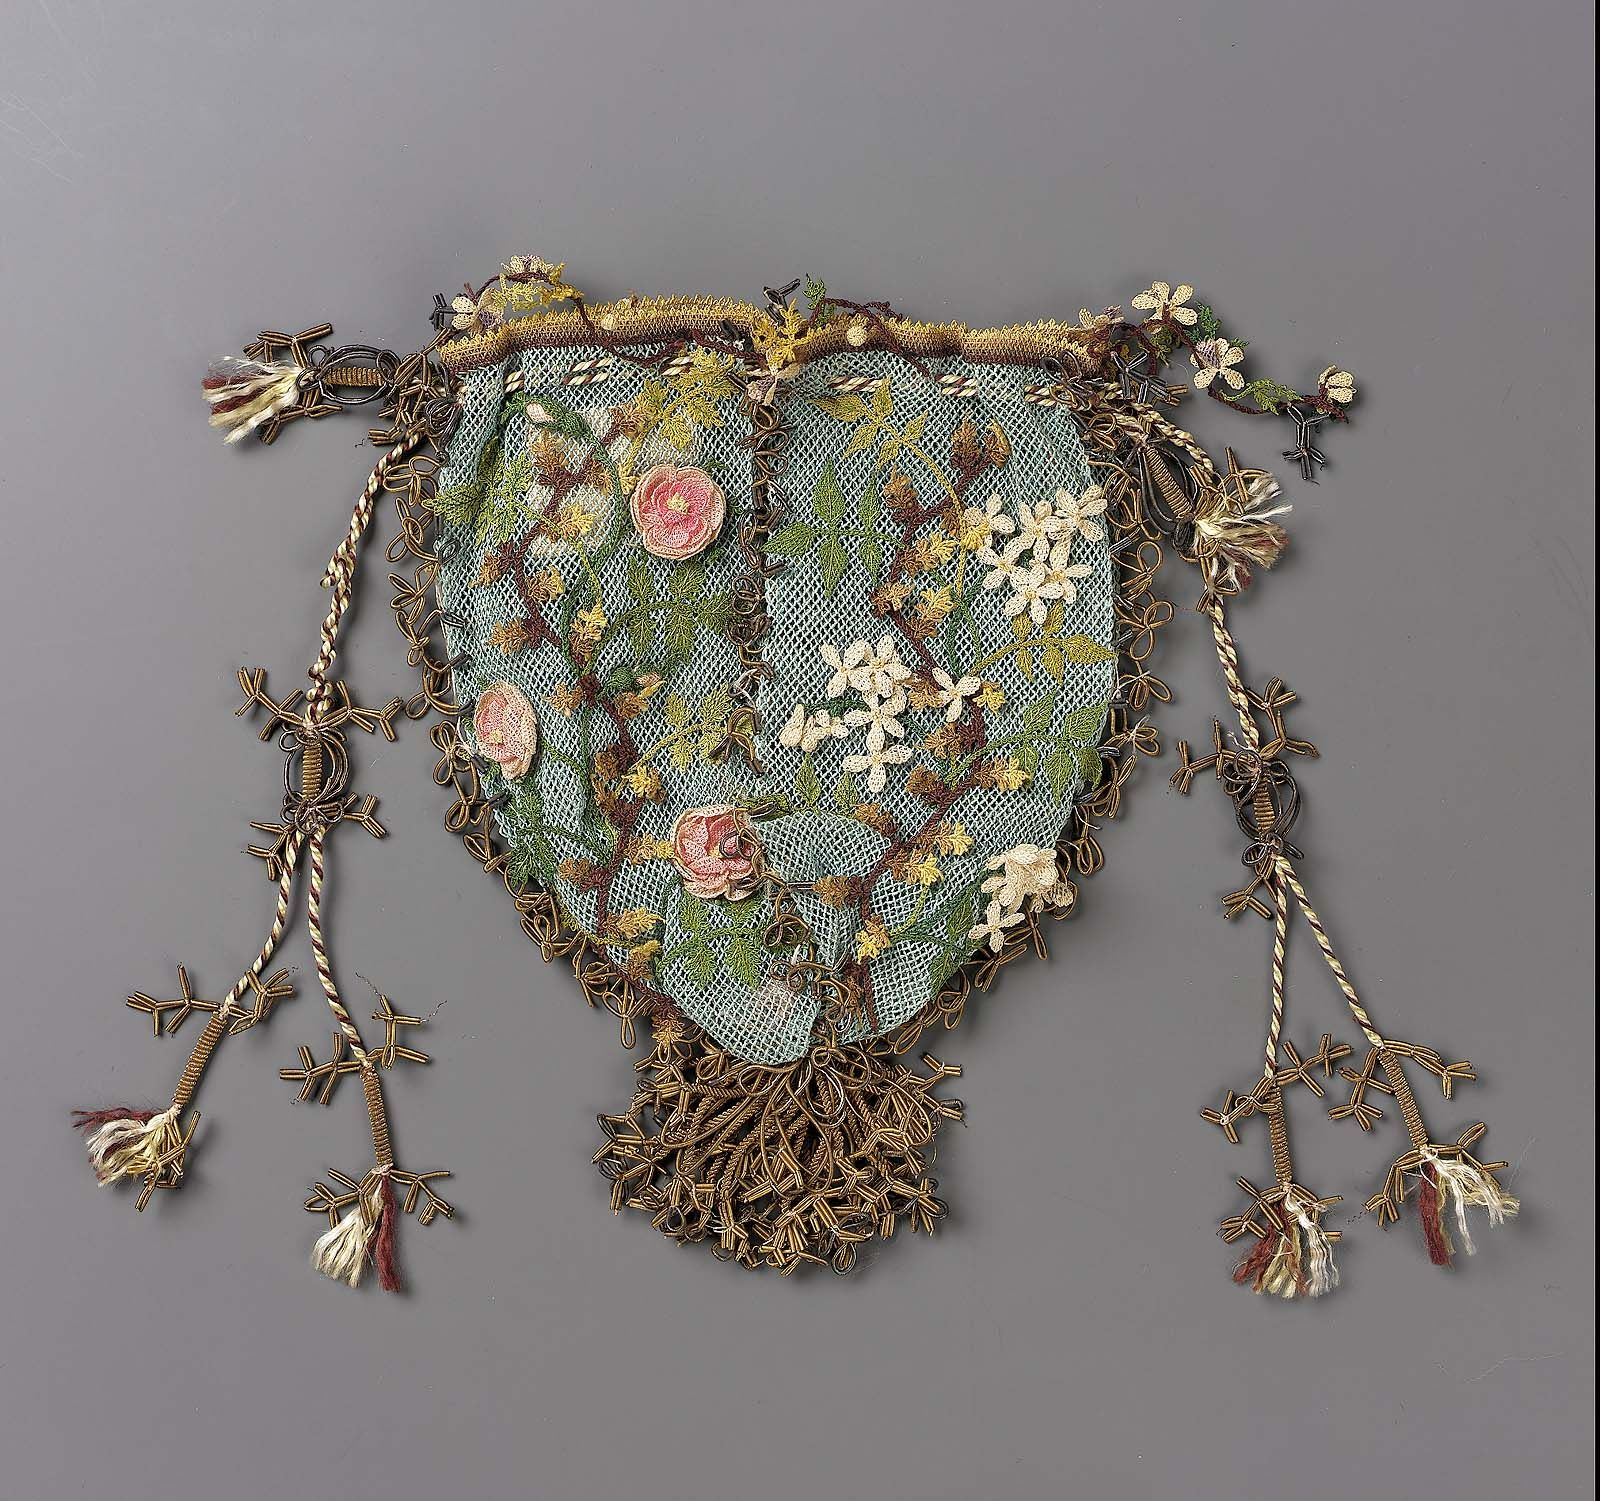 Lace bag made of silk net with silk bibila lace, gilt metal thread and tassels, and silk cording and was made in the 1800s.